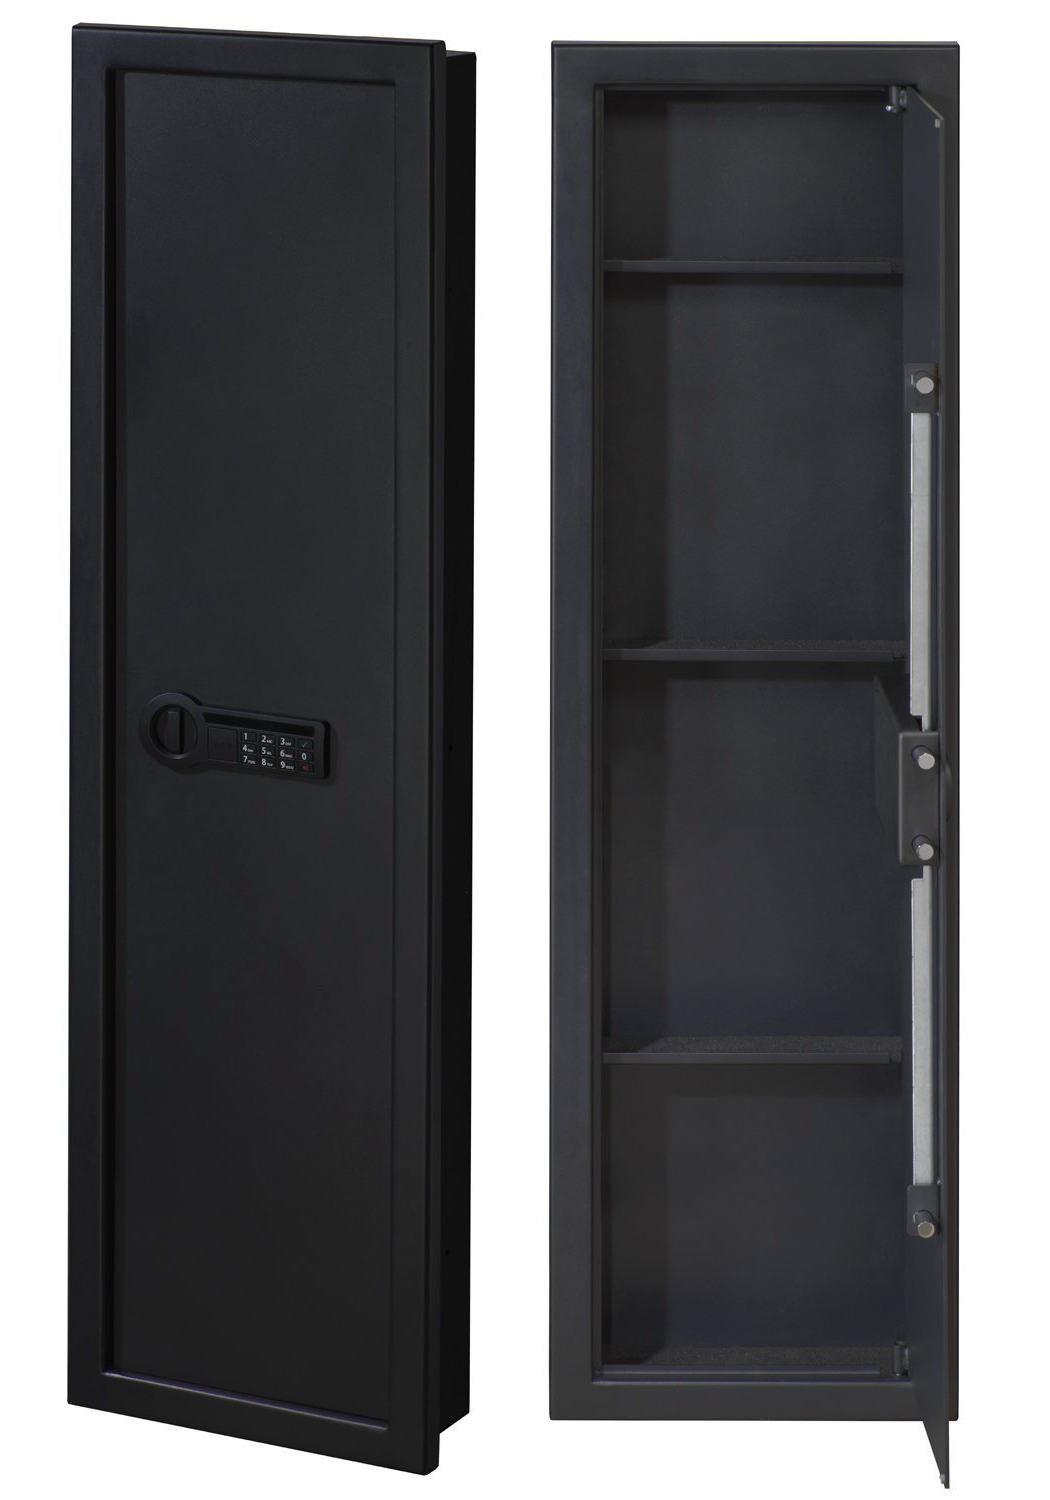 Top 5 Best In Wall Gun Safes 2019: Hidden Wall Safe Reviews